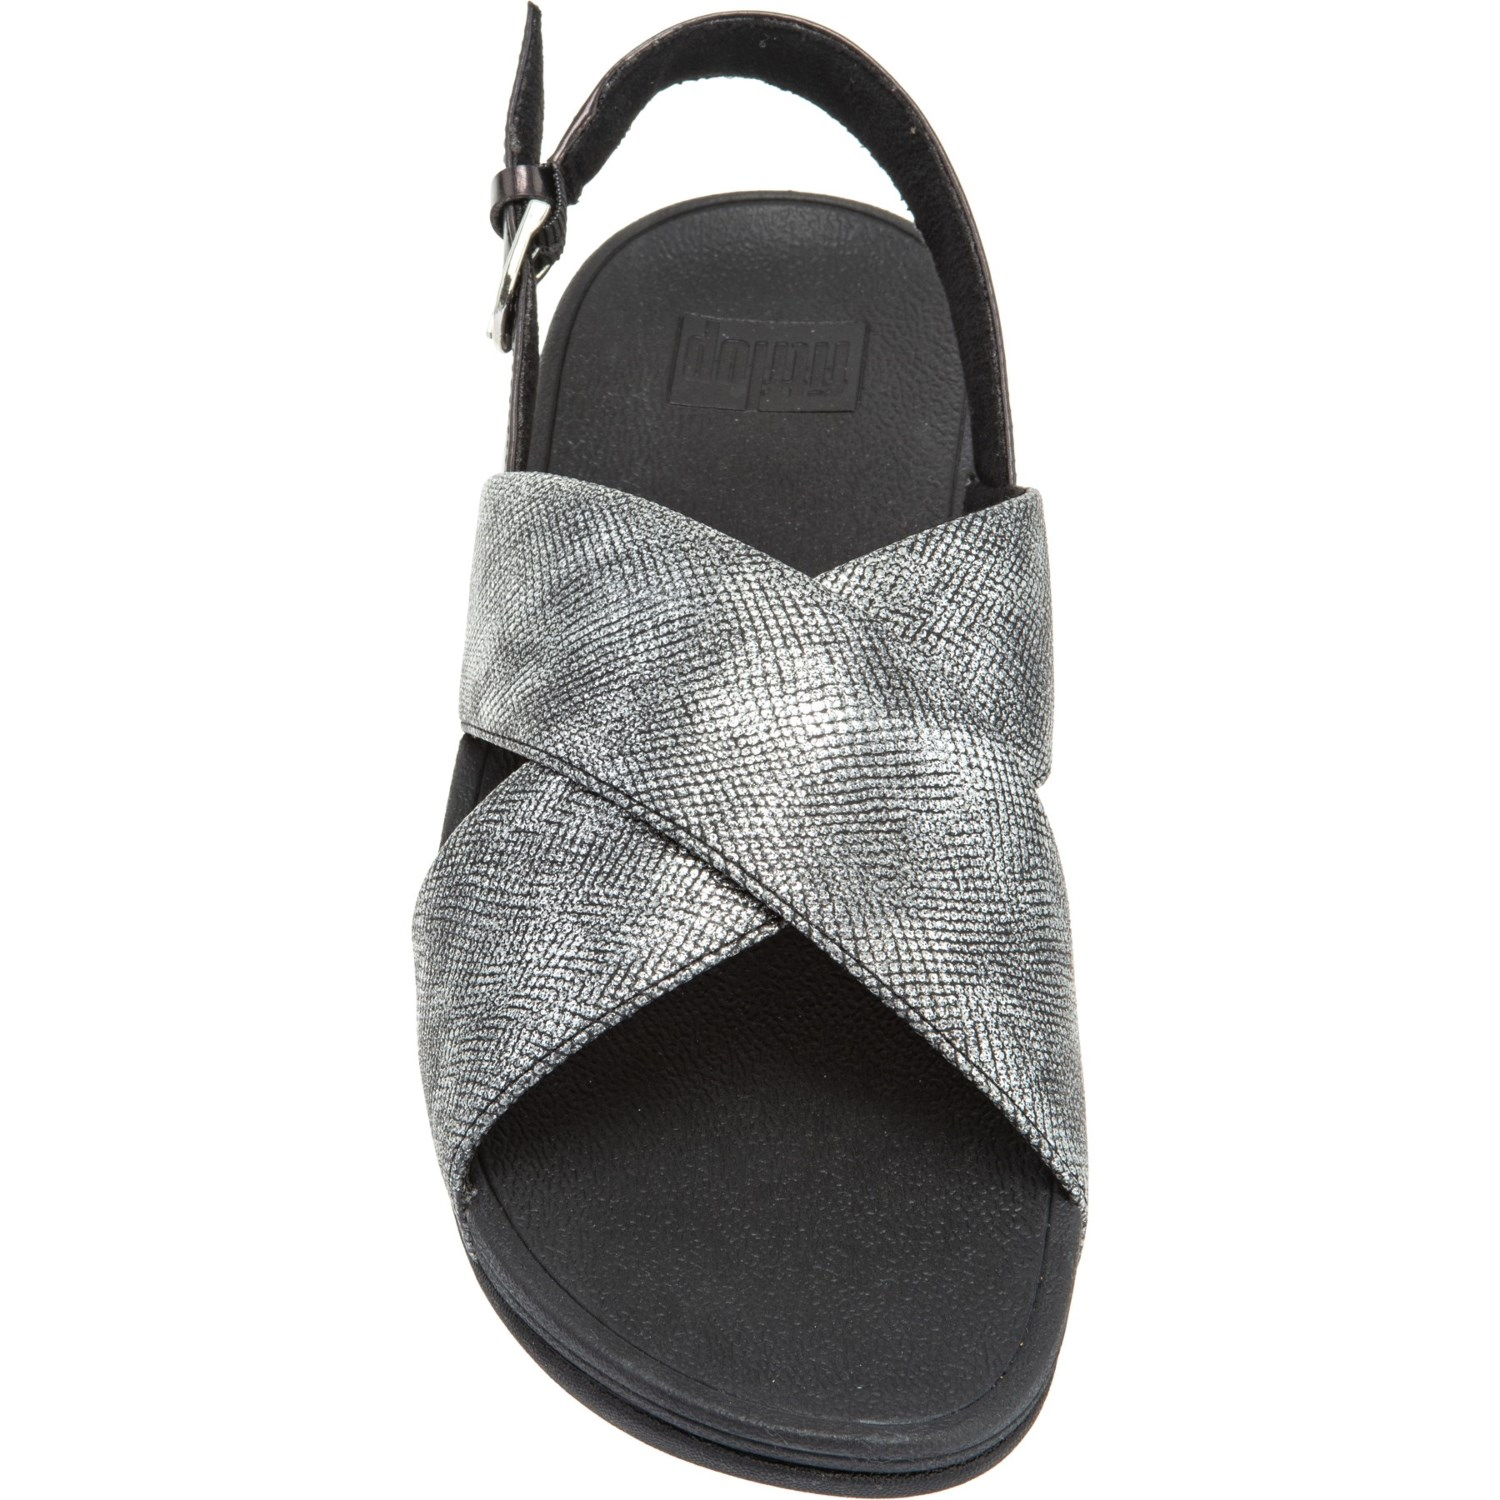 181a143b9 FitFlop Lulu Cross-Back Strap Sandals (For Women) - Save 20%